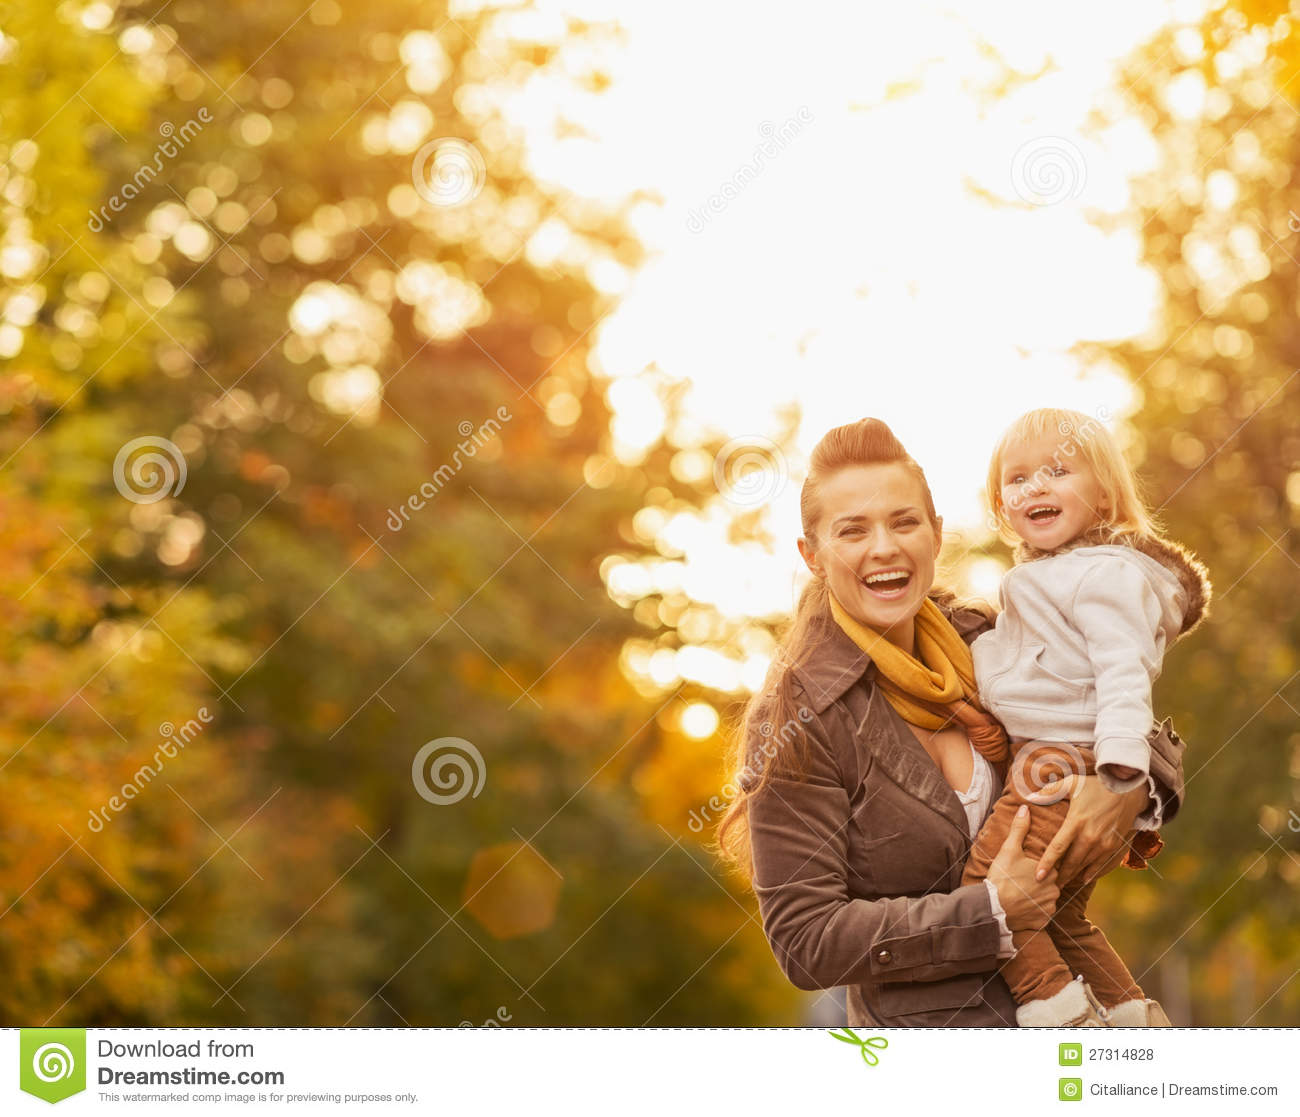 Portraits of happy young mother and baby outdoors